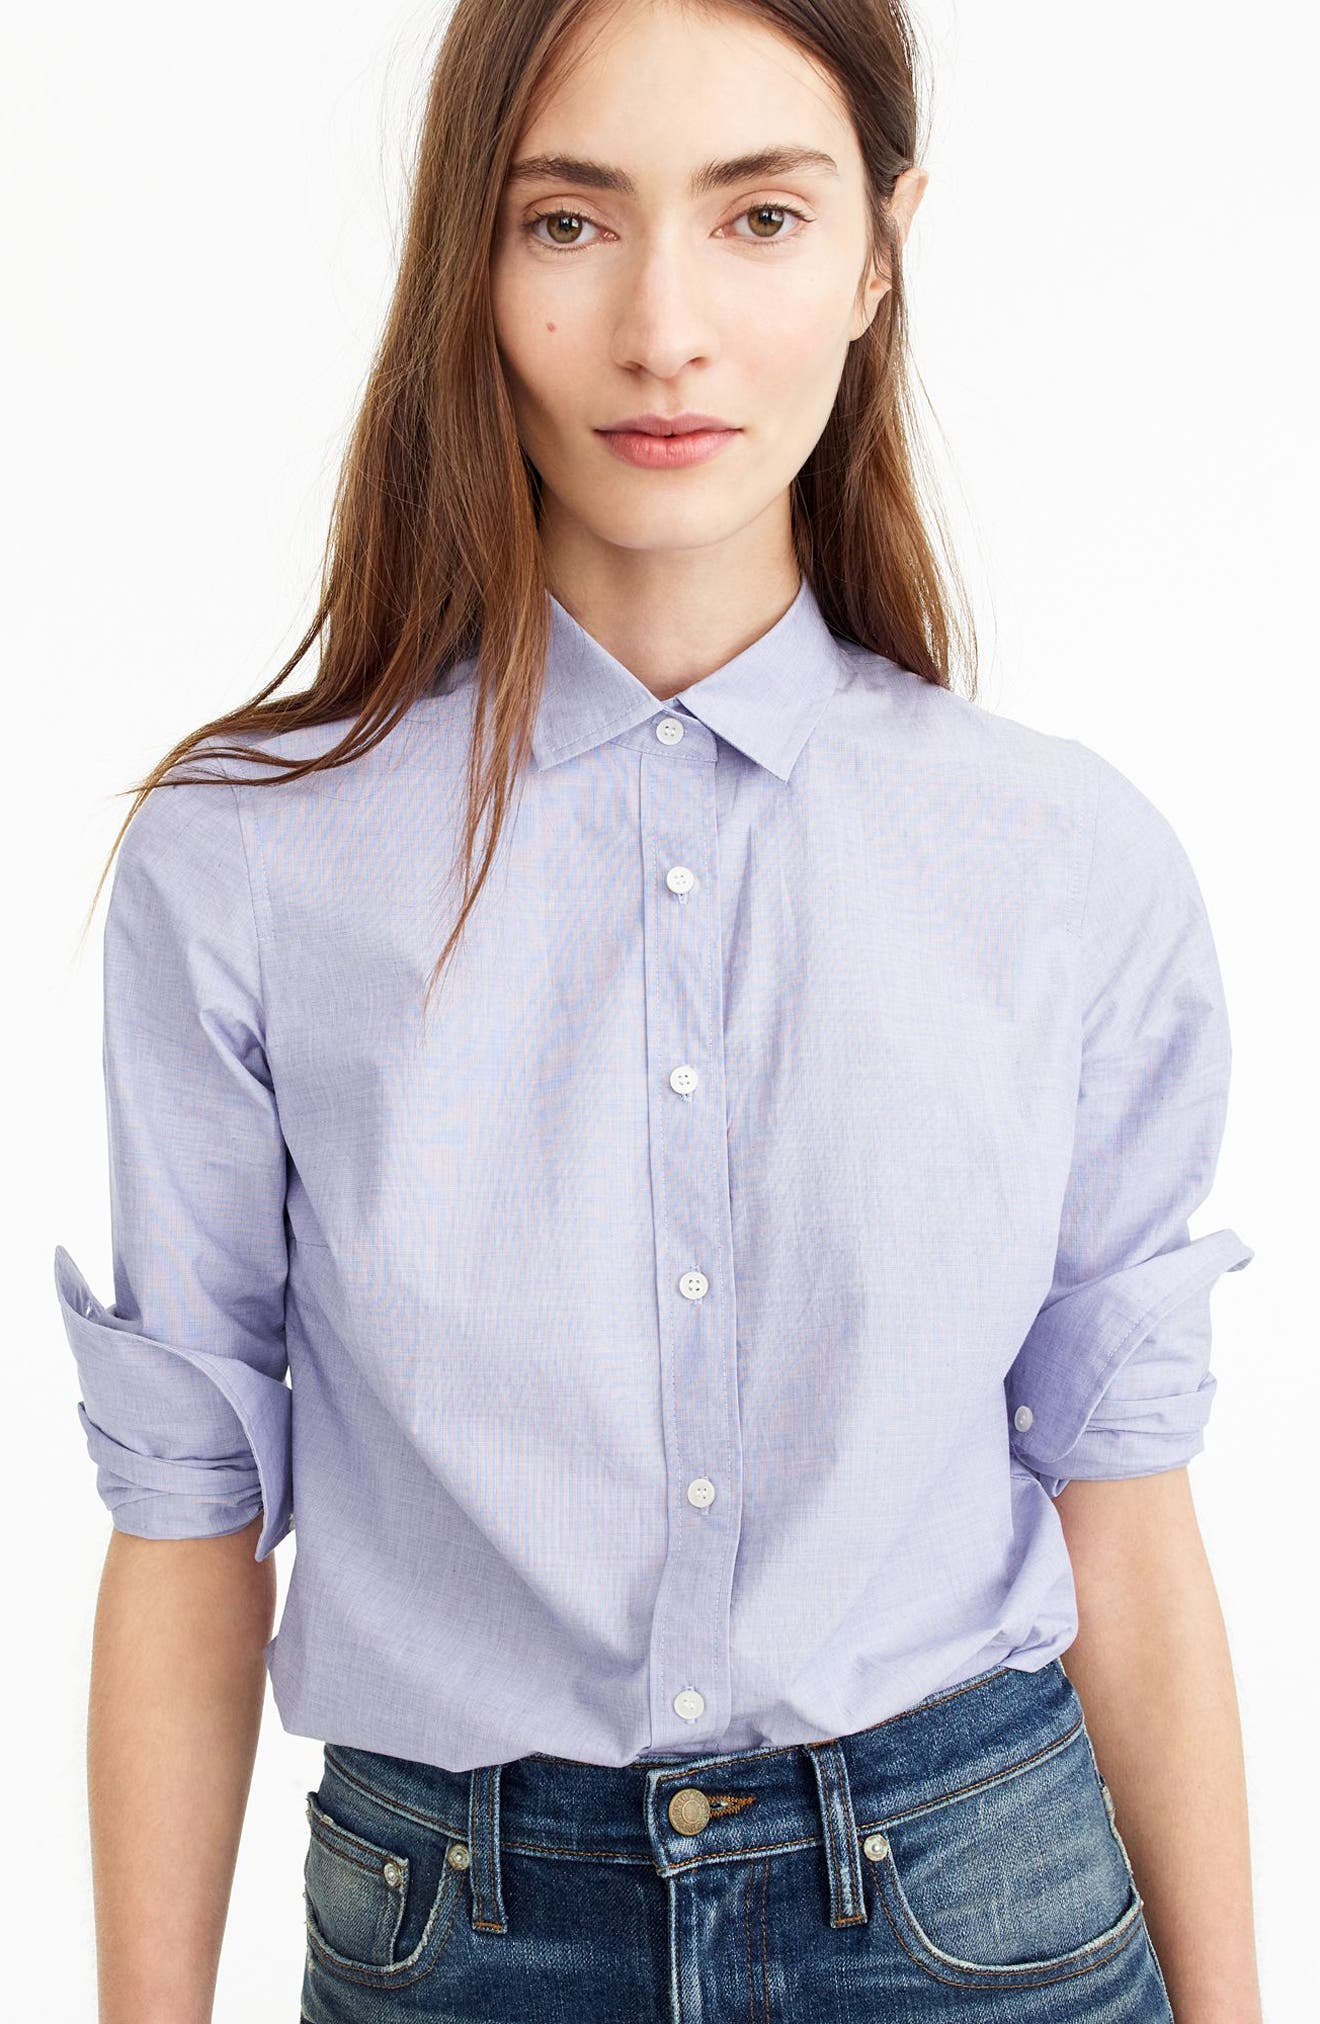 J.Crew New Perfect Shirt,                             Main thumbnail 1, color,                             Peri